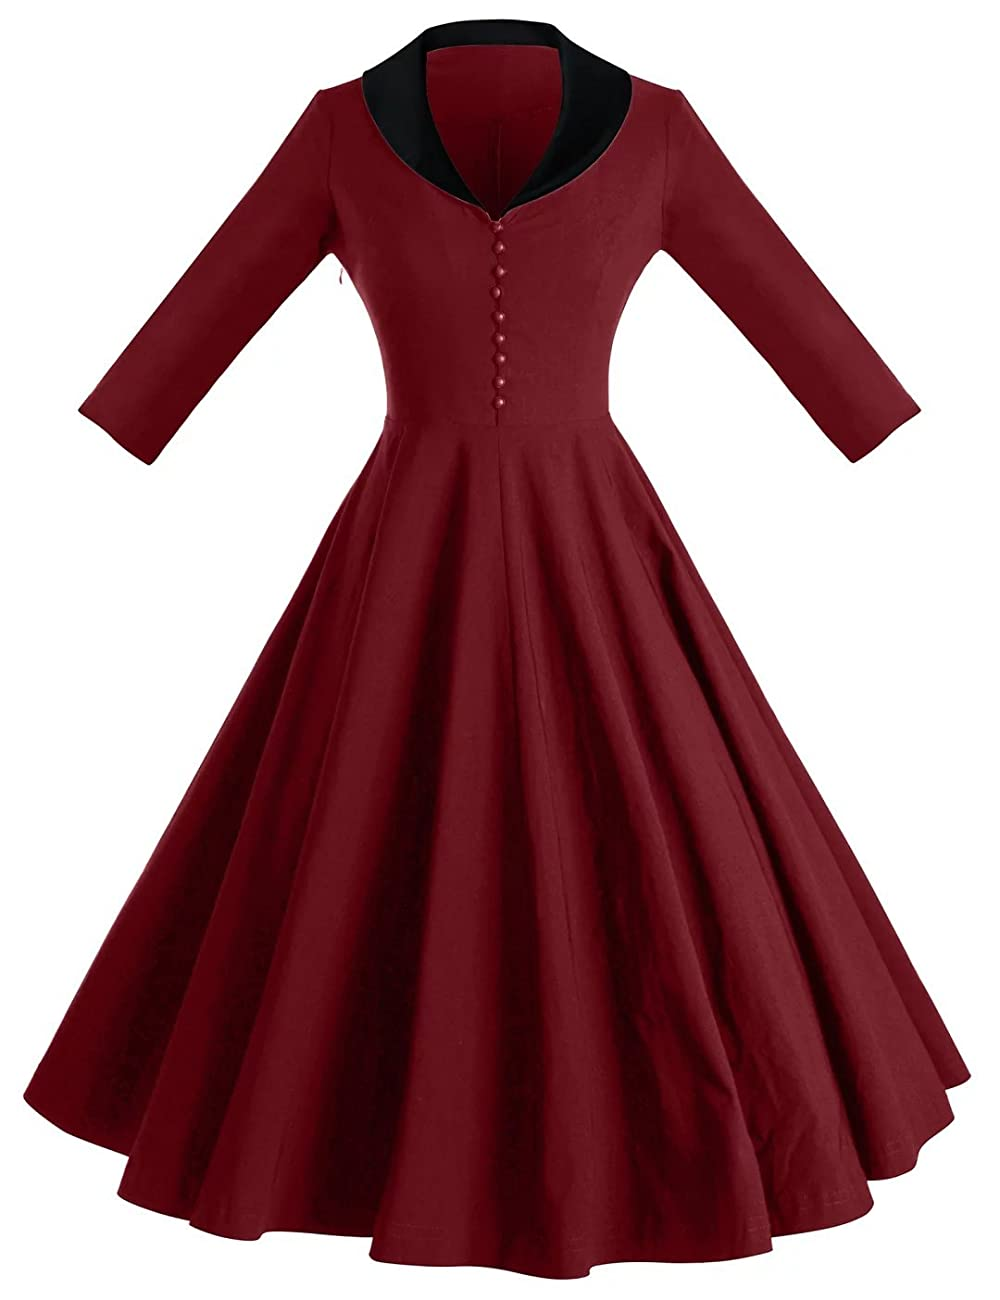 GownTown Womens Dresses cape collar 3/4 Sleeves 1950s Vintage Dresses Swing Stretchy Dresses 0